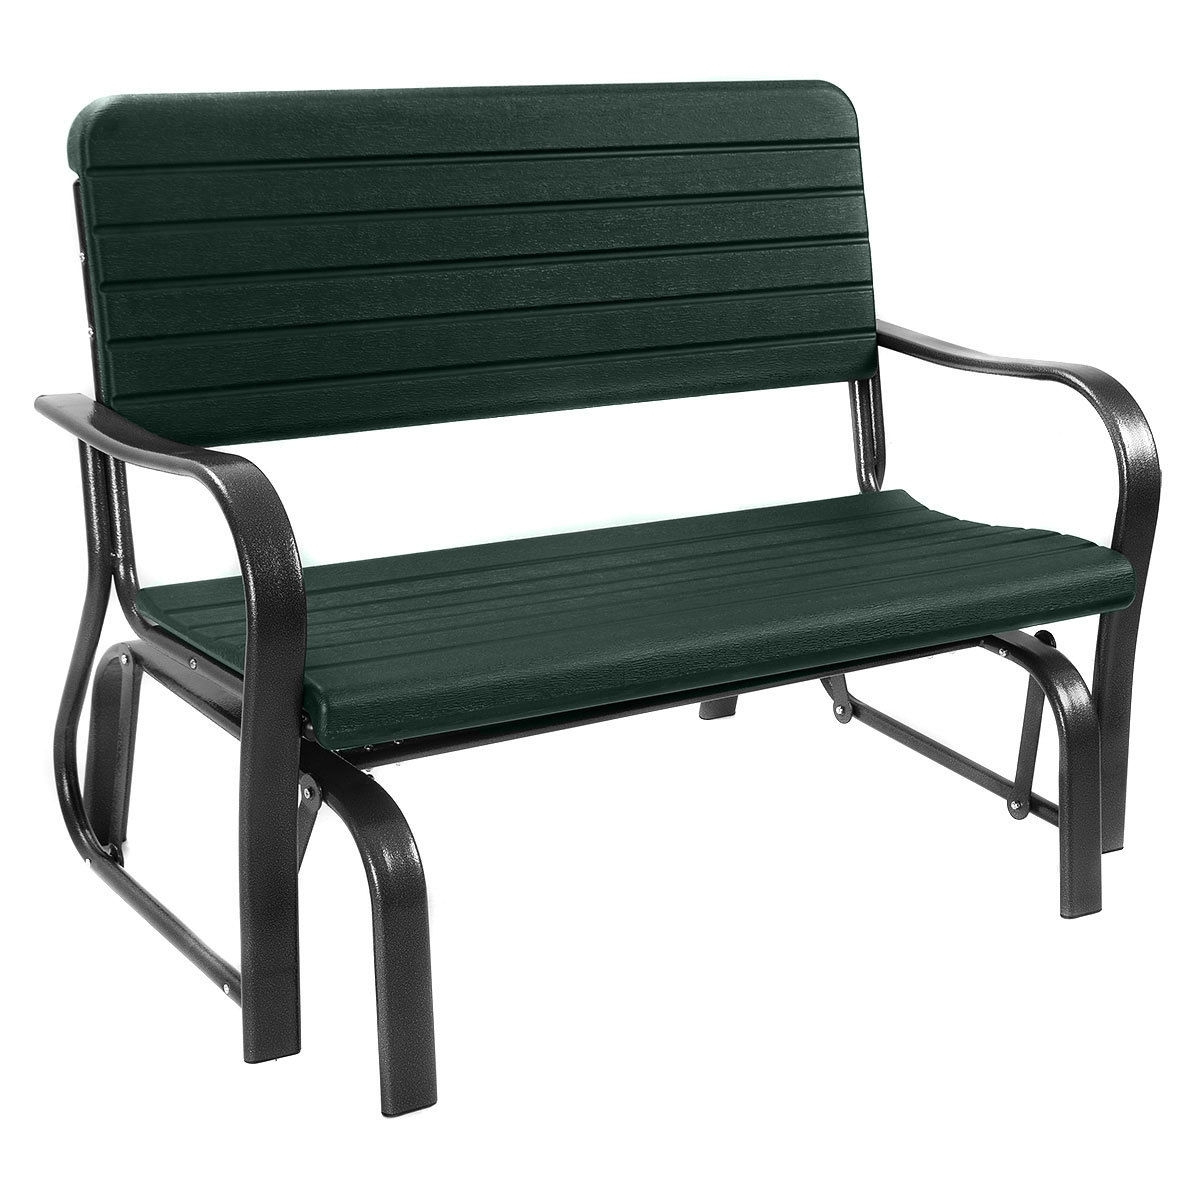 1 Person Antique Black Steel Outdoor Gliders Throughout 2019 Outdoor Patio Steel Swing Bench Loveseat (View 29 of 30)